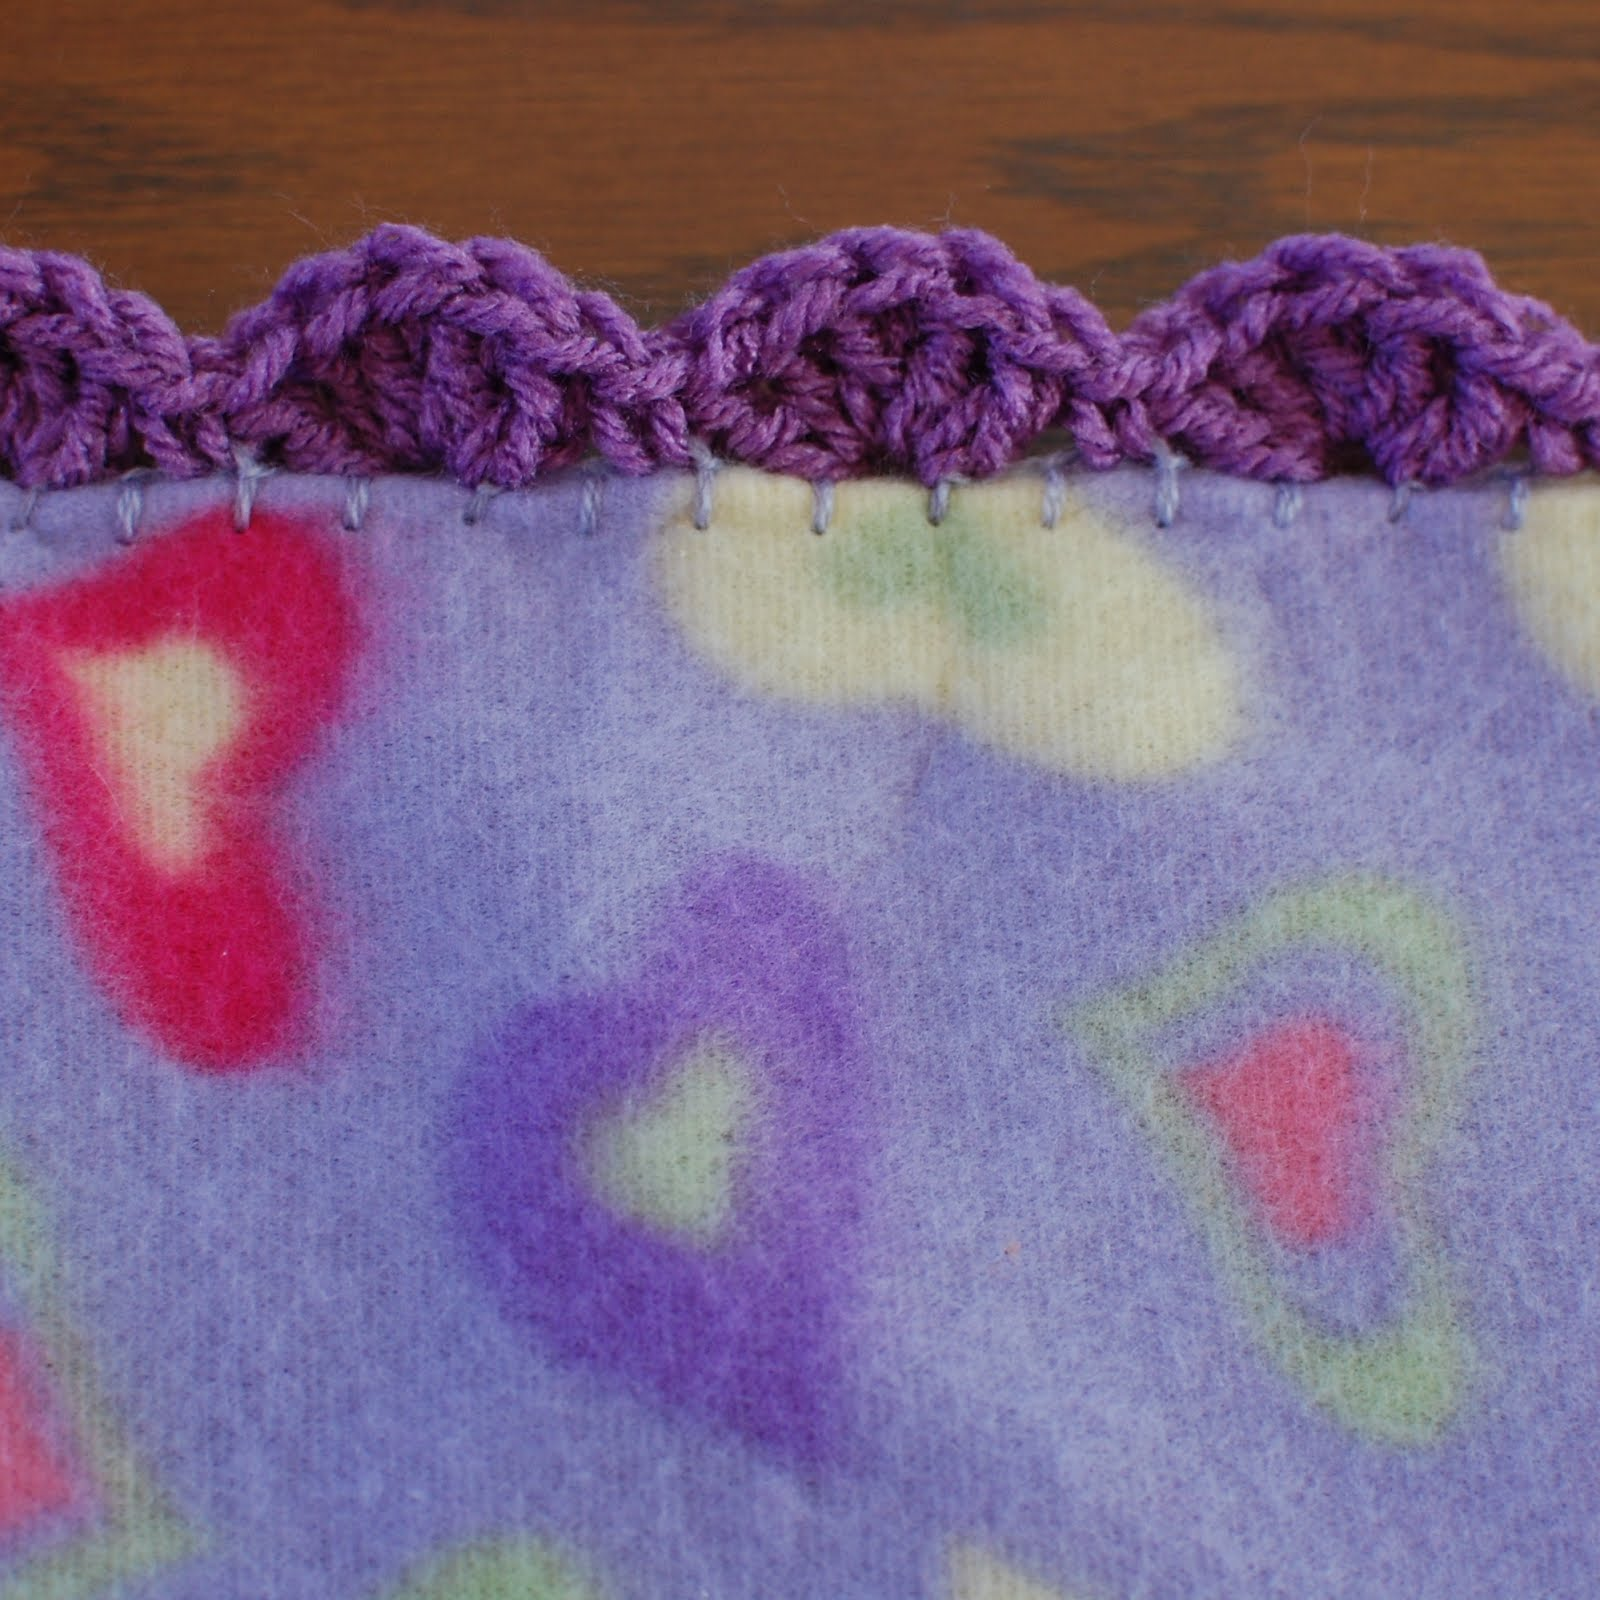 Quick and easy crocheted blanket edging patterns petals to picots crochet shell border pattern bankloansurffo Images